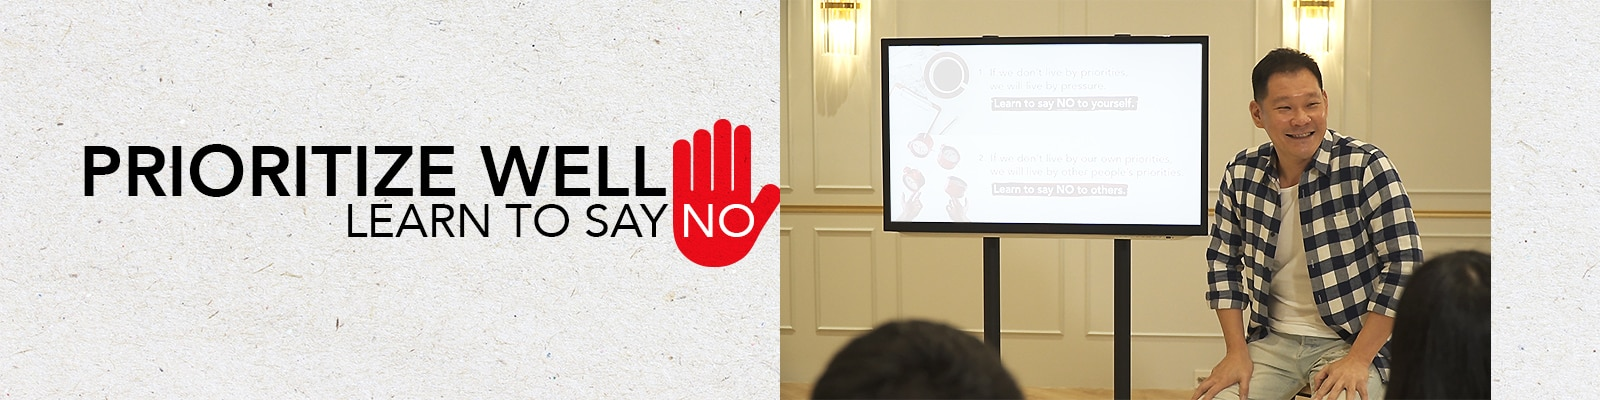 Prioritize Well: Learn to Say No